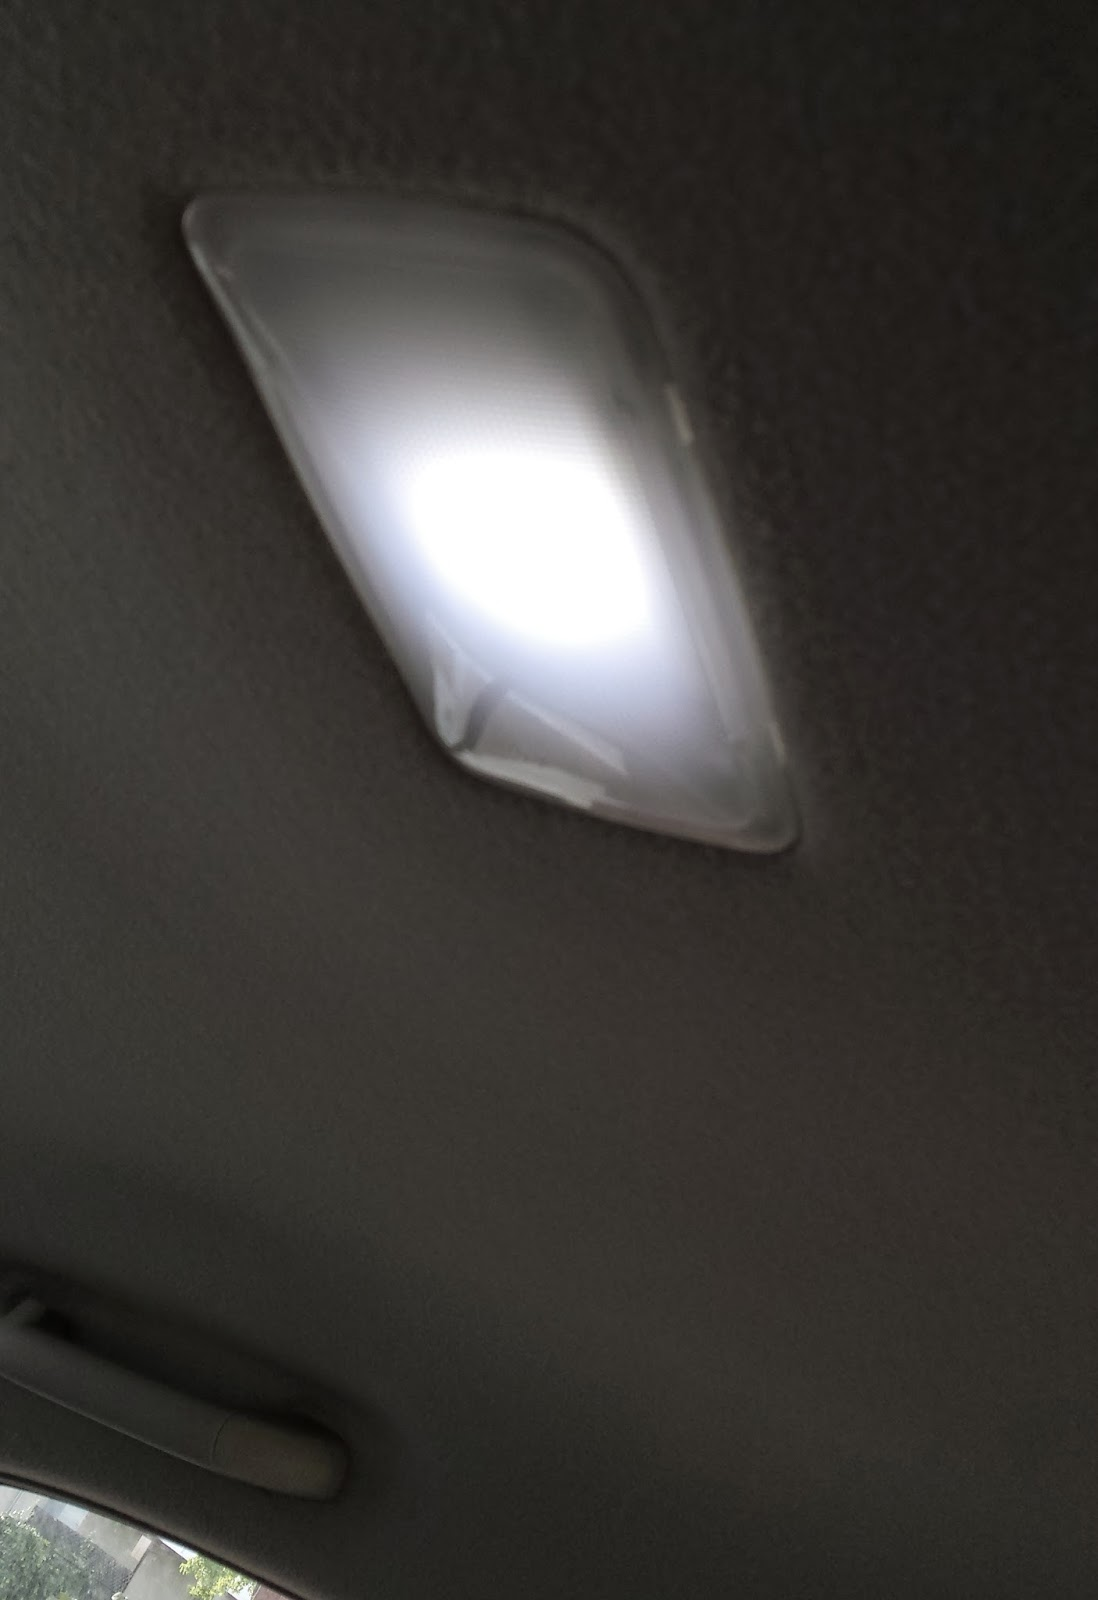 Cheap upgrade led interior dome light 2003 corolla toyota report this image arubaitofo Images